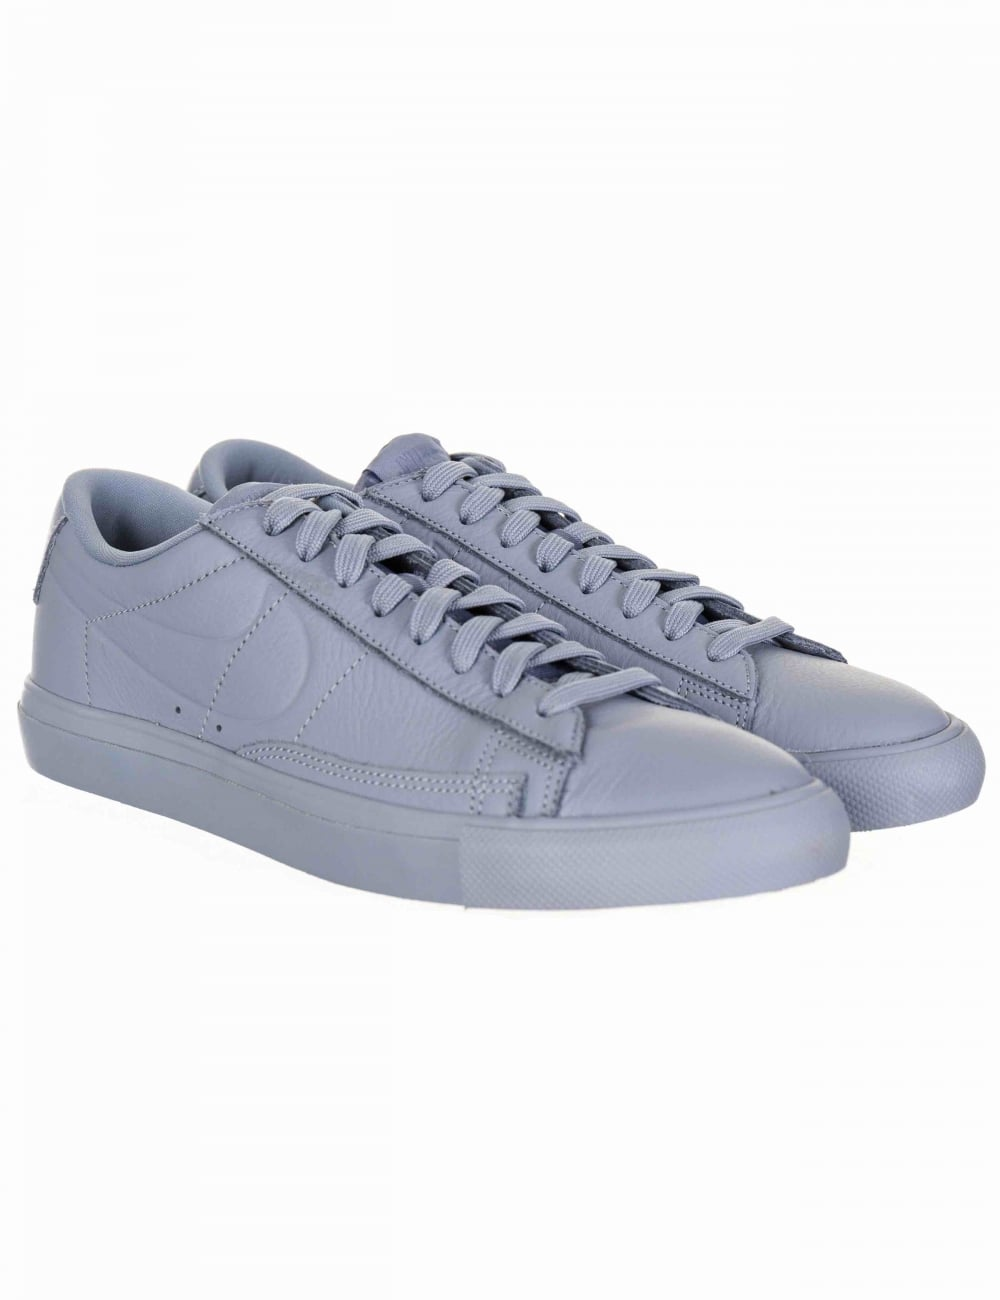 Blazer Low Shoes - Glacier Grey